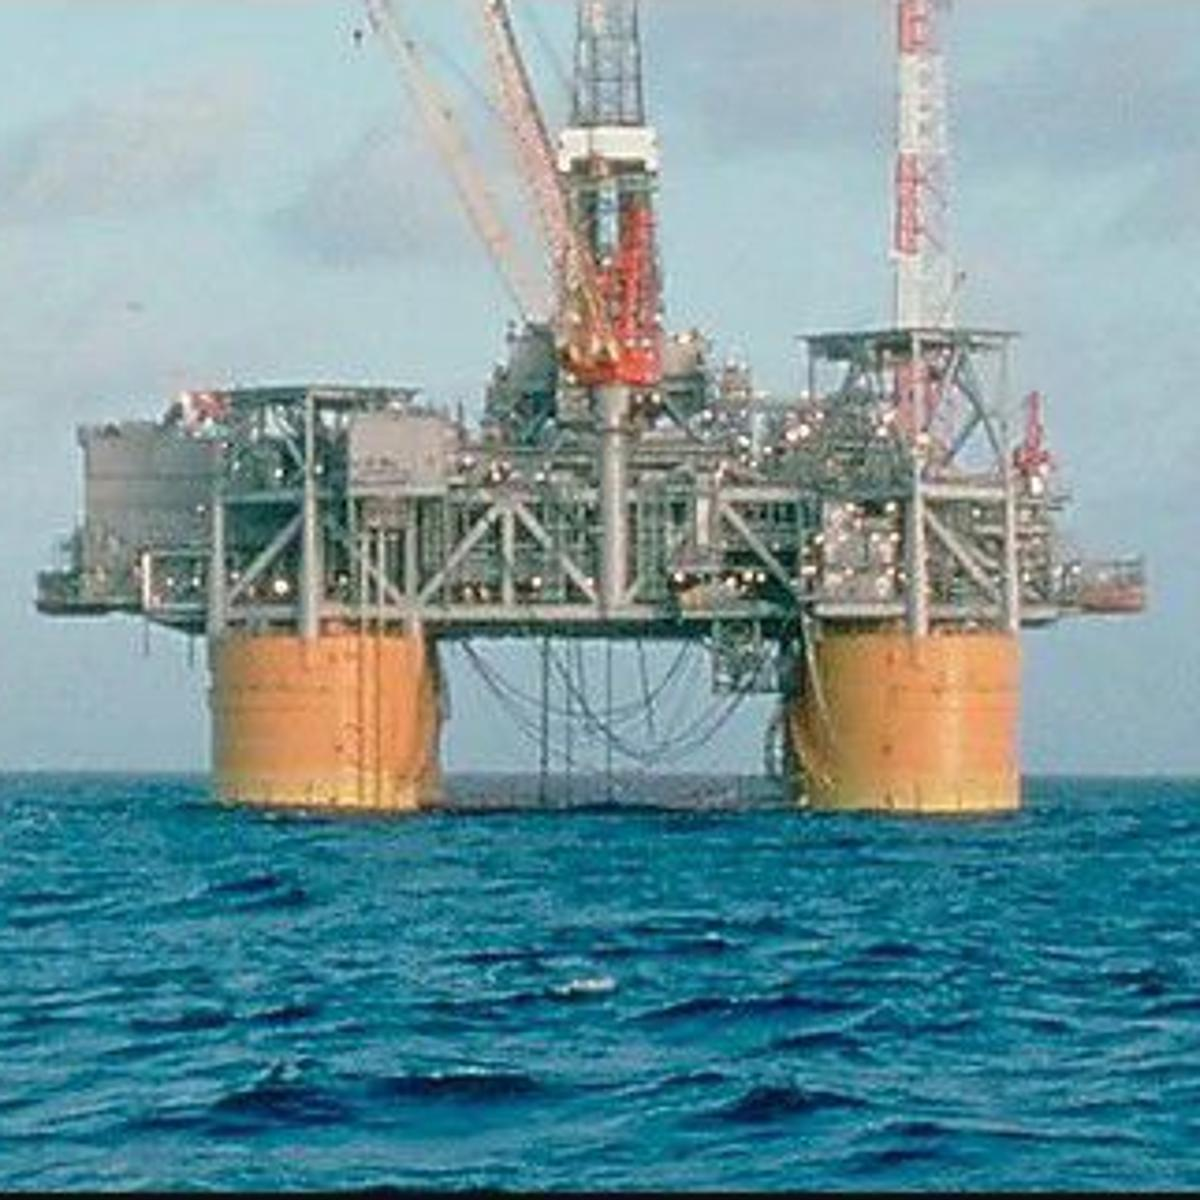 Feds to investigate after two killed, one injured on Shell's Gulf of